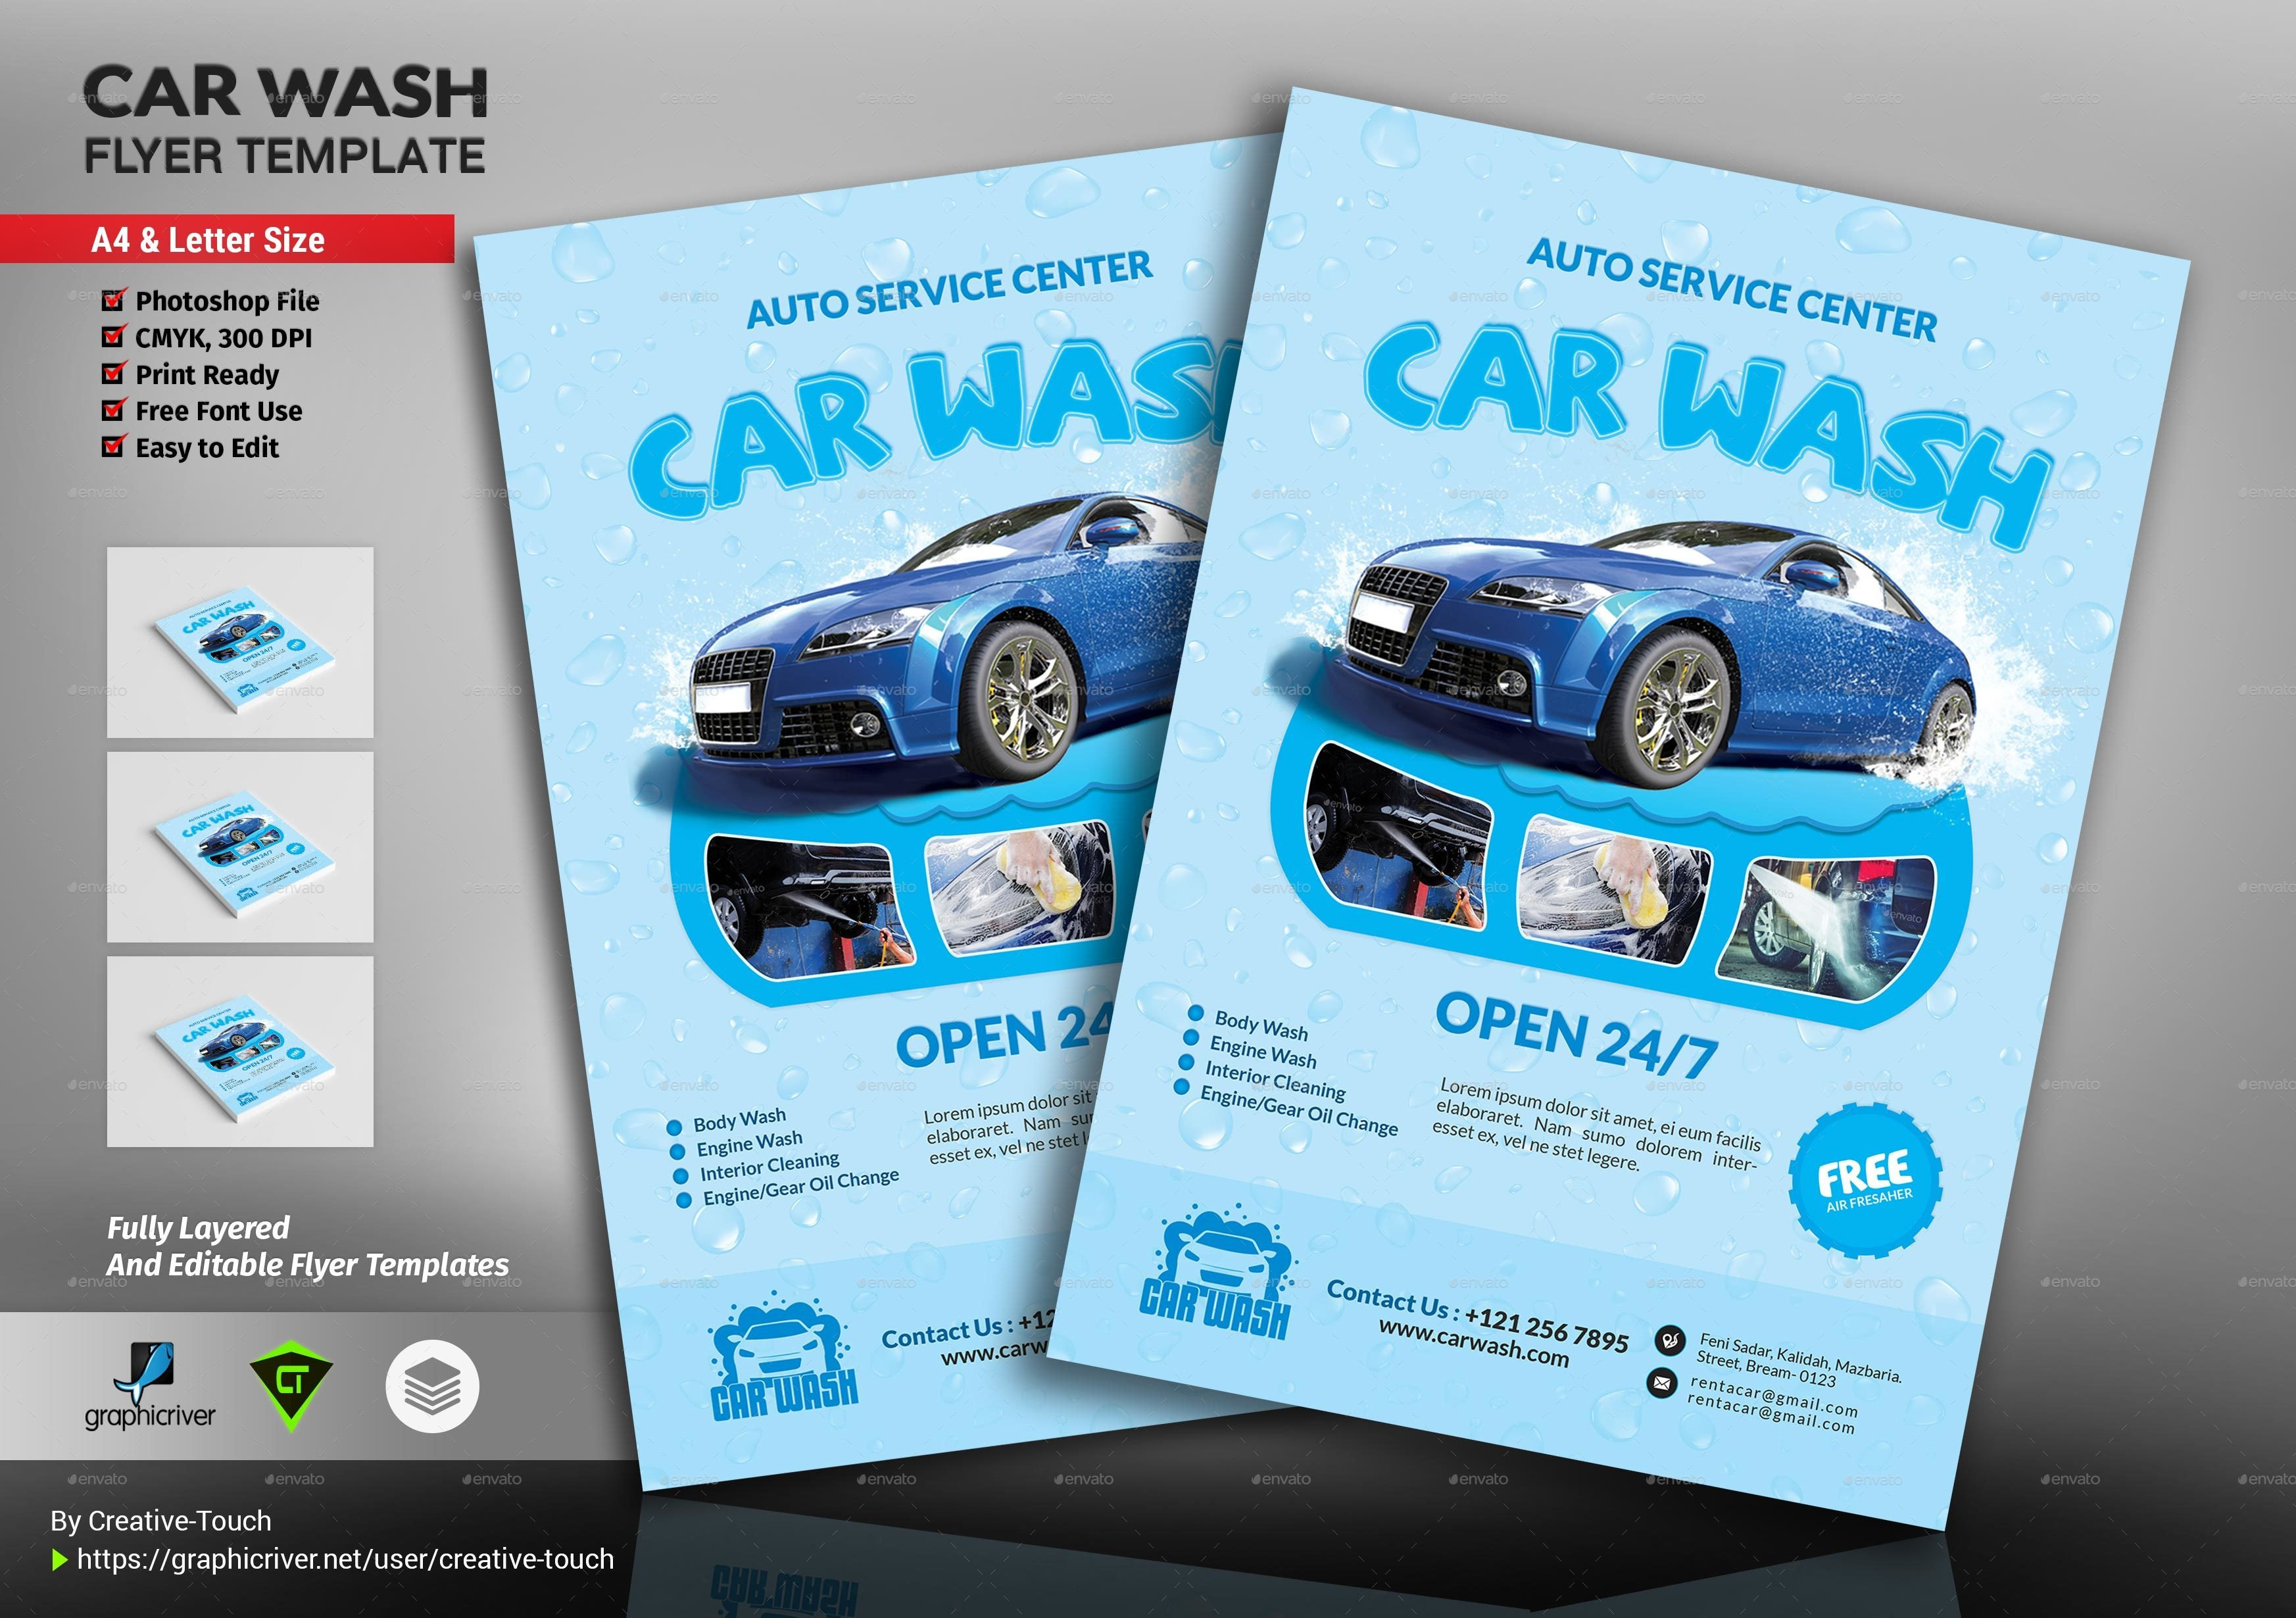 Car Wash Flyers Template Car Wash Flyer Template by Creative touch